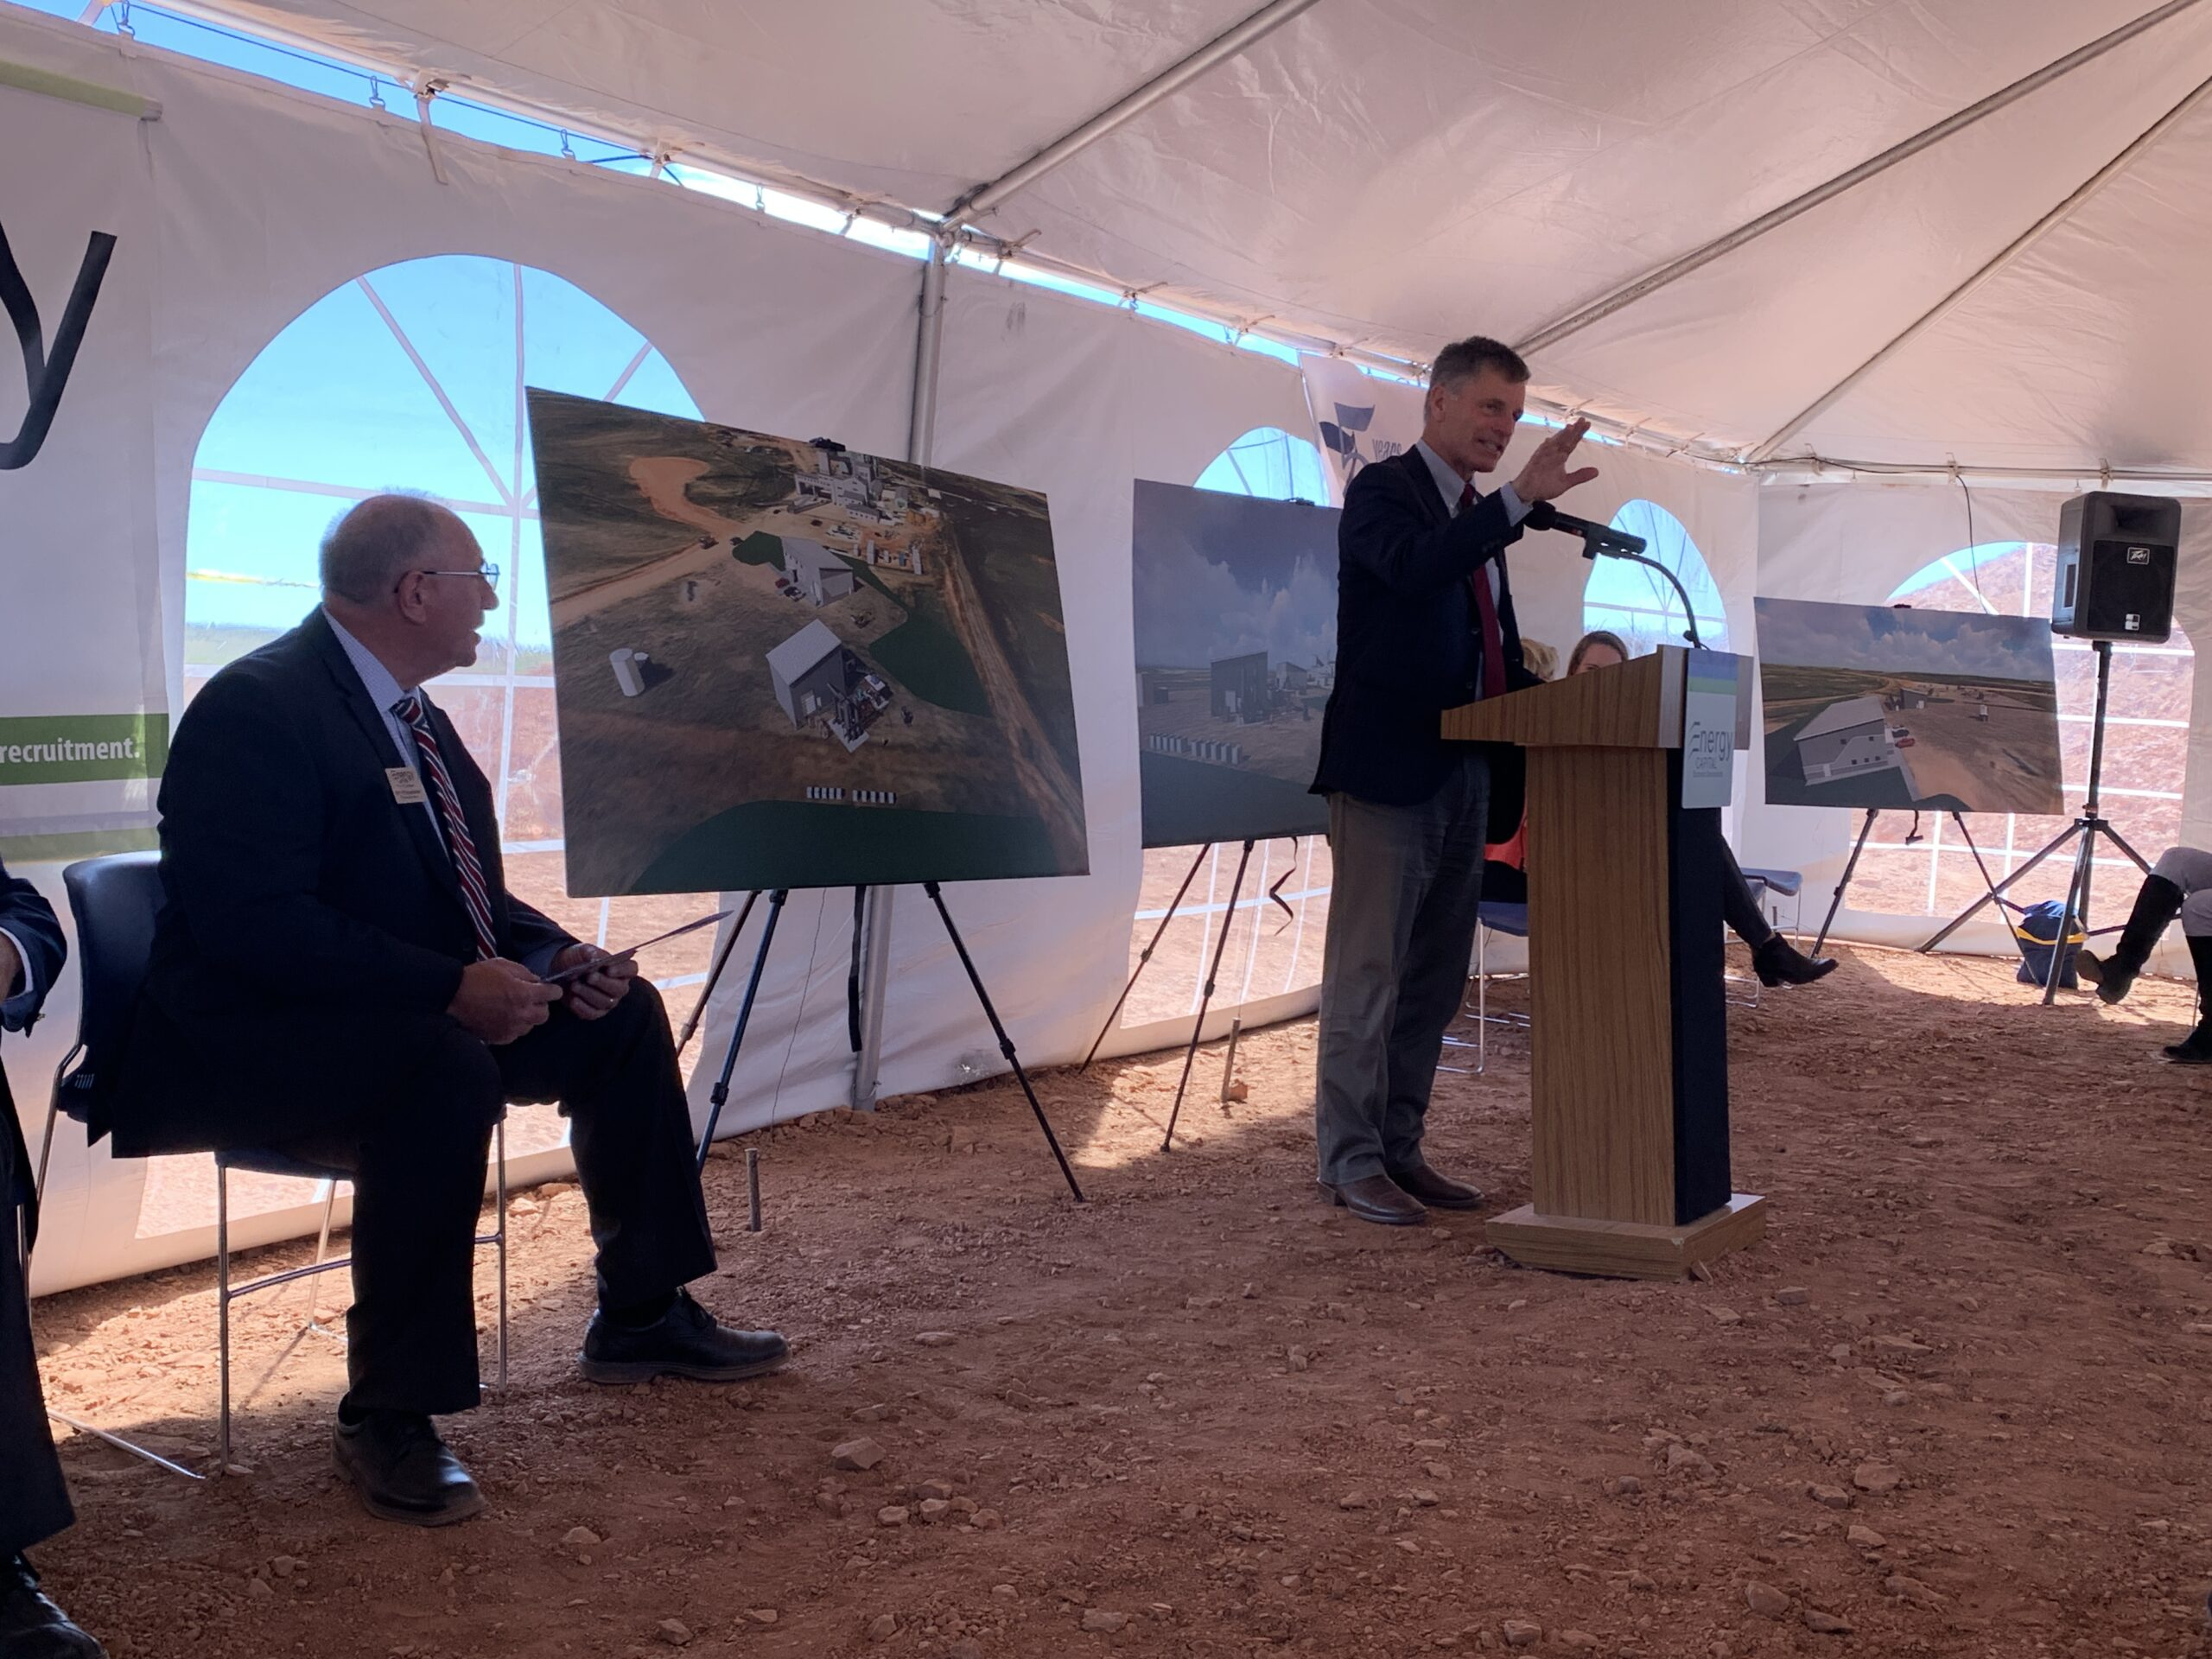 Governor Mark Gordon speaking at the groundbreaking ceremony for the Wyoming Innovation Center